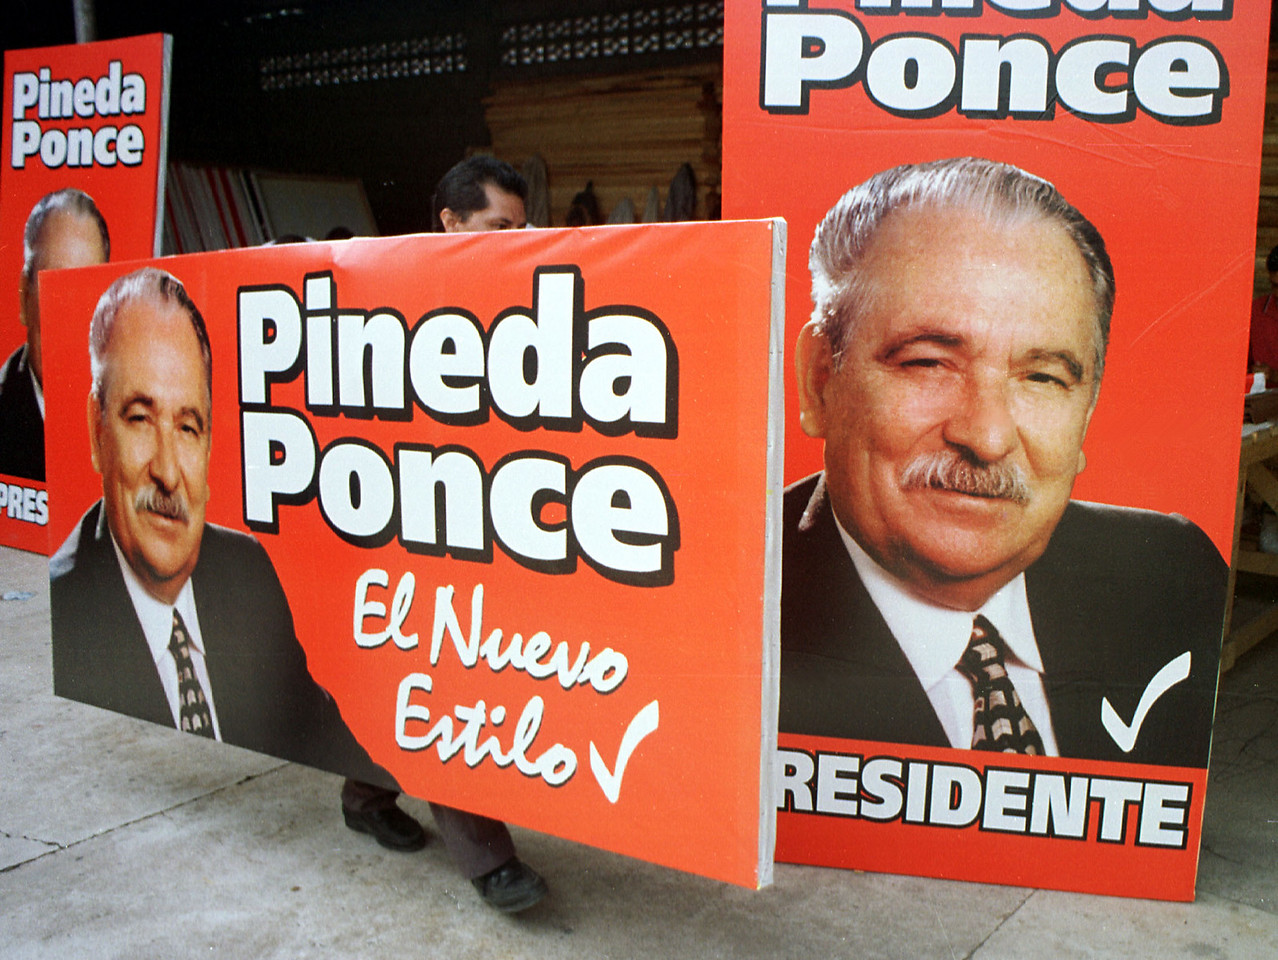 A campaign workers carries a political poster of Liberal party presidental candidate Pineda Ponce September 26, 2001 in Tegucigalpa Honduras. Ponce will be going up against National party candidate Ricardo Maduro in the November 25th election. REUTERS,/ Adam Bernstein